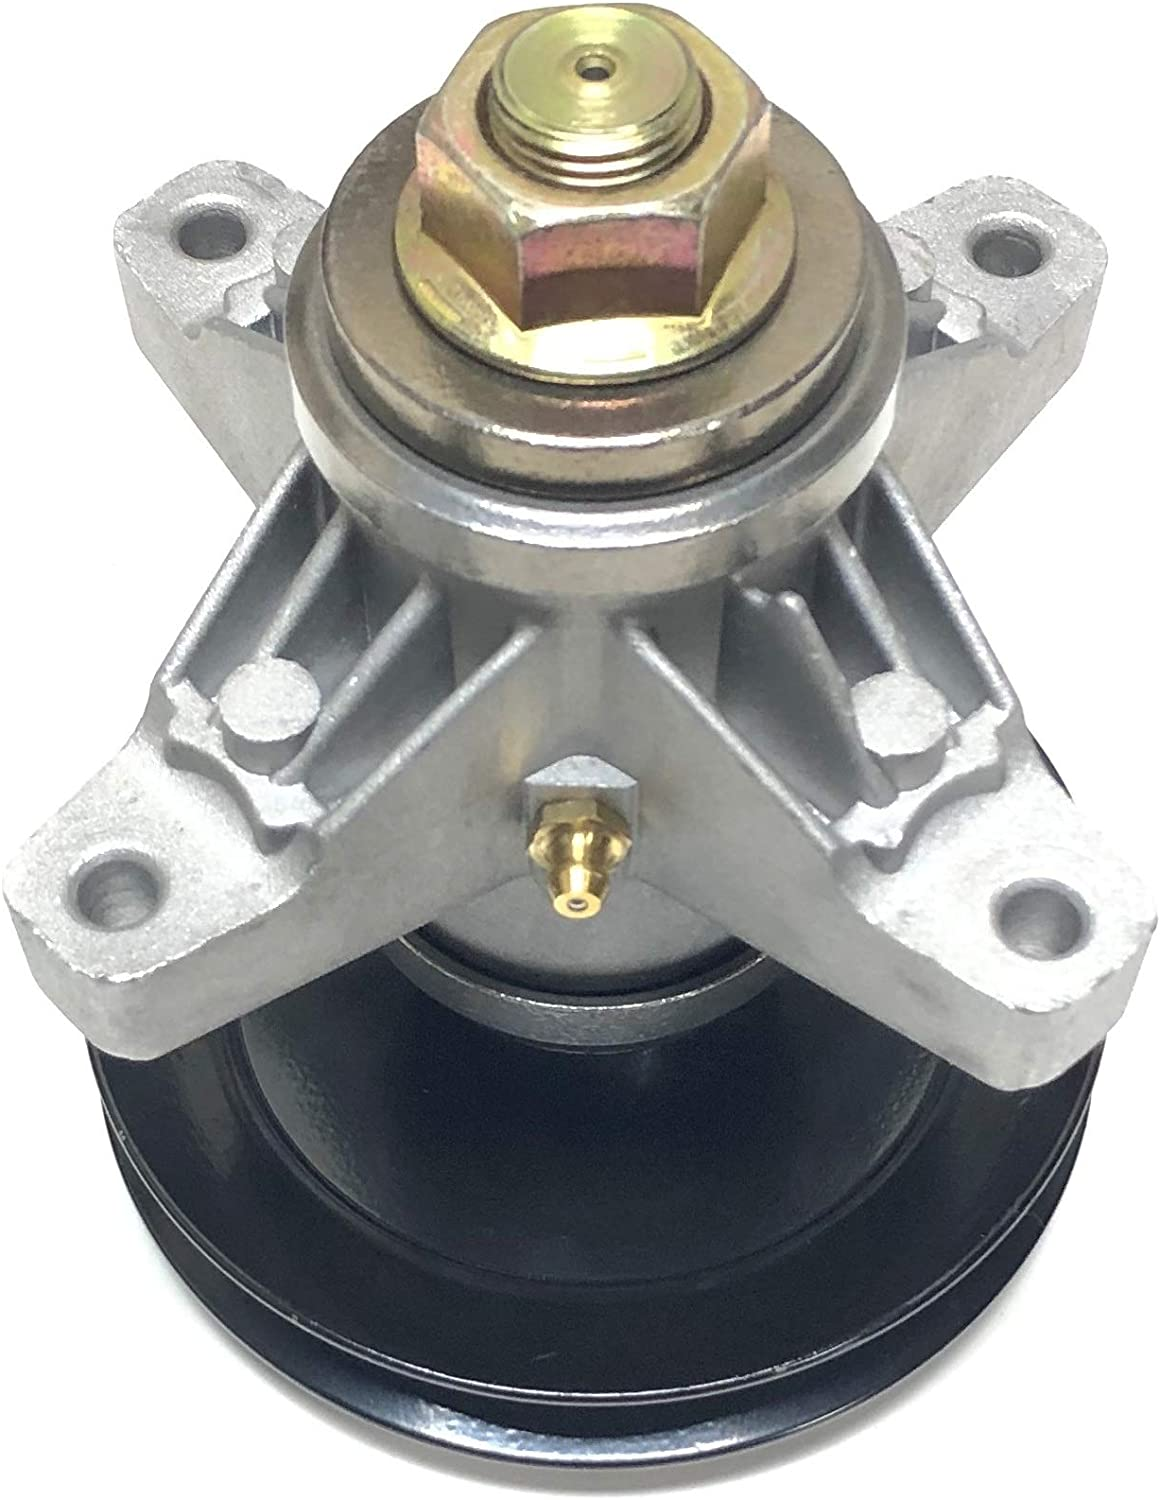 Replacement for Cub Cadet MTD Spindle 618-04129 918-04129 618-04129B 918-04129B